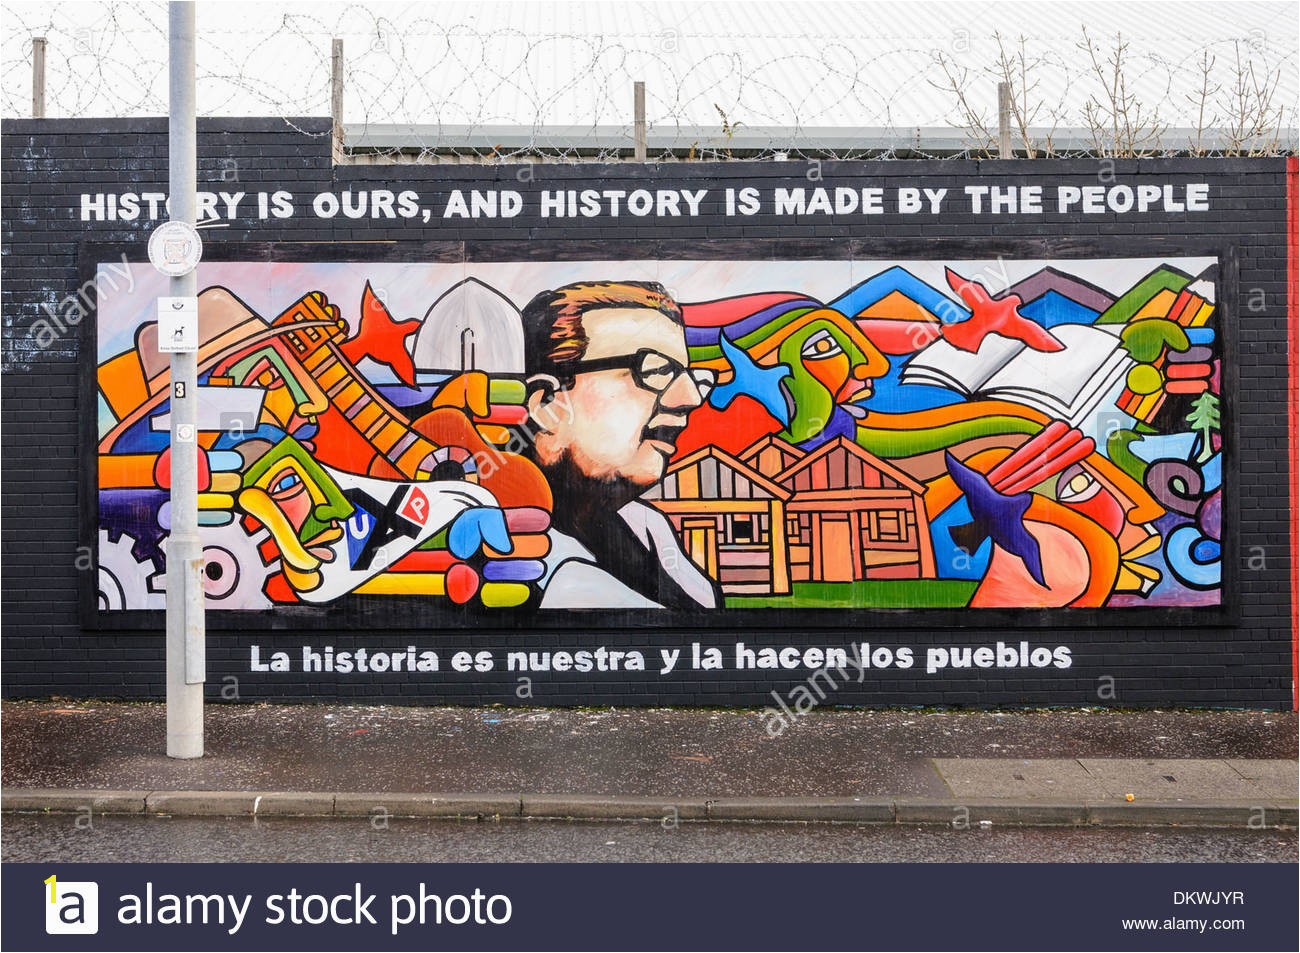 Mural at the International Peace Wall Belfast showing the Ultimas palabras Last words